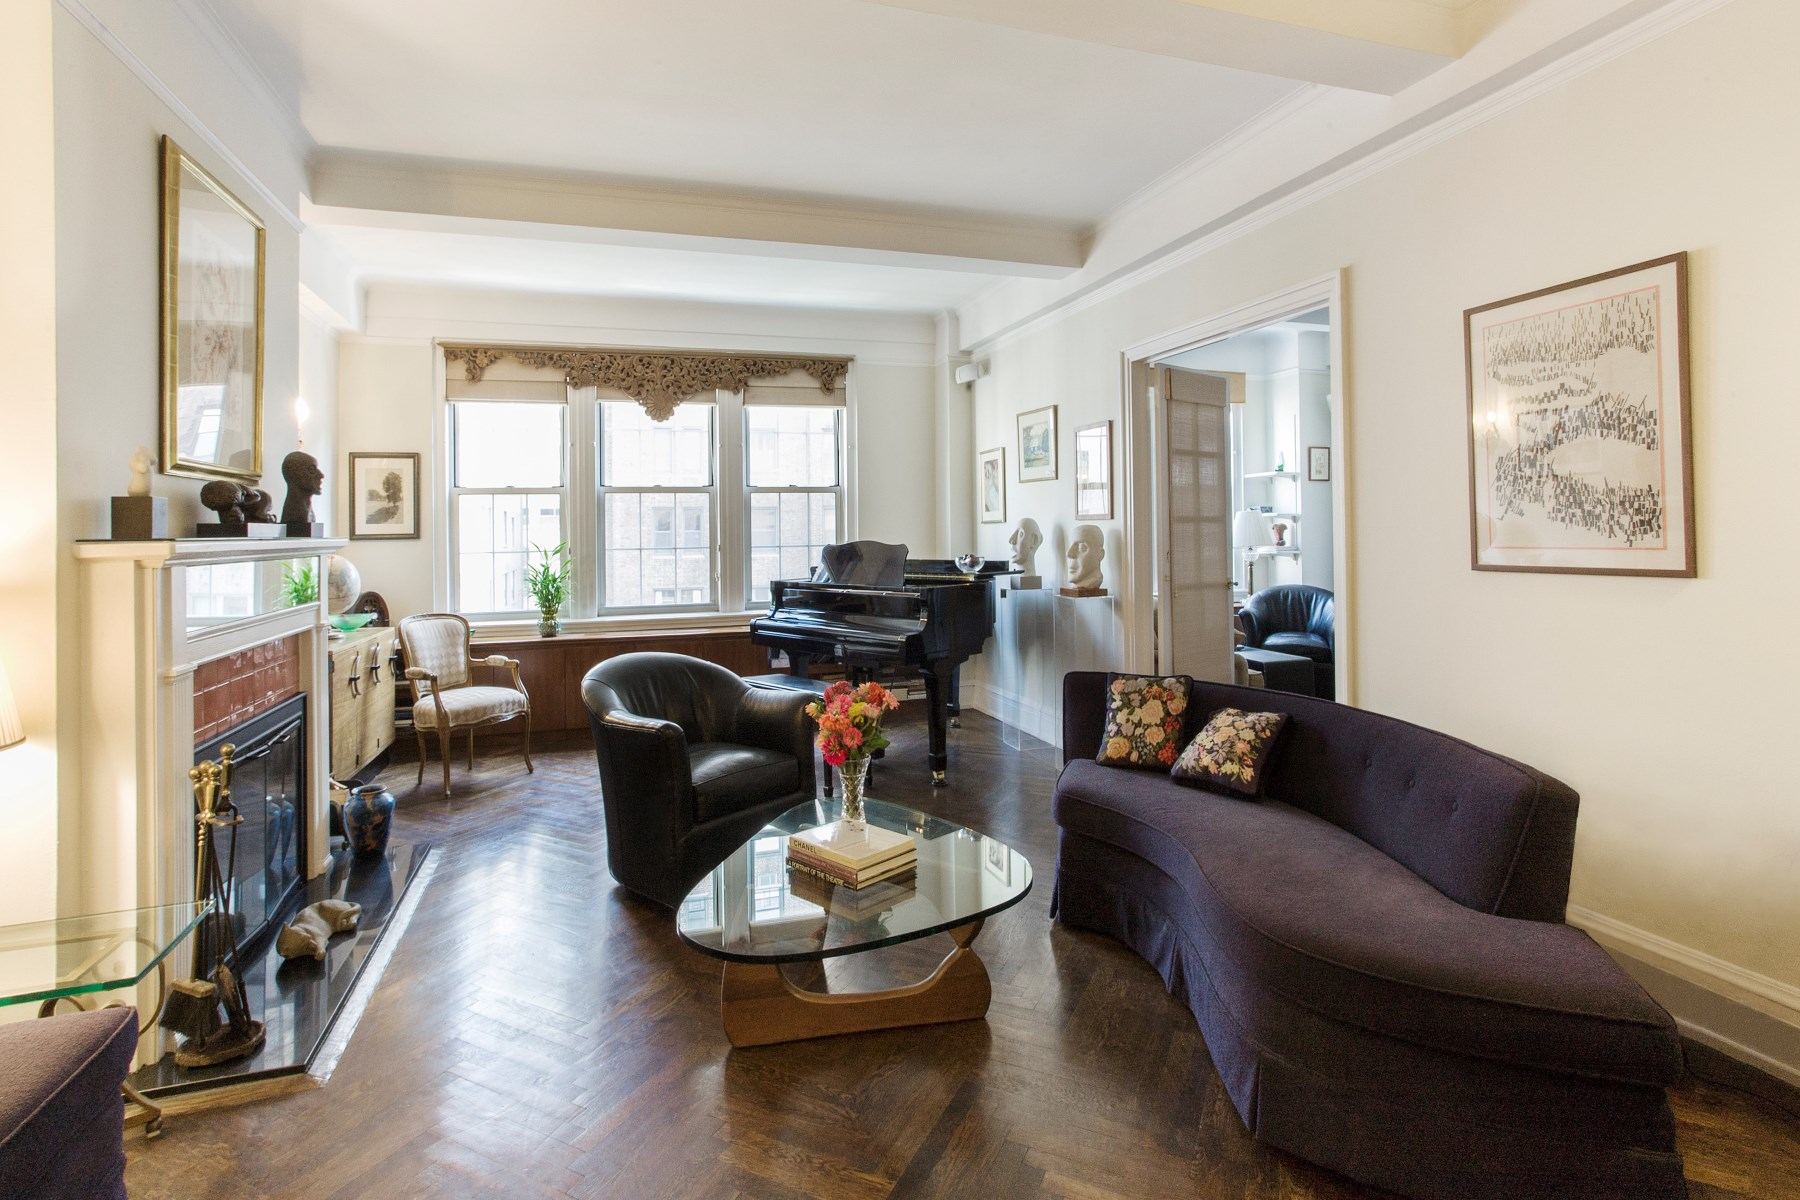 Co-op for Sale at 410 East 57th Street 410 East 57th Street Apt 11A Midtown East, New York, New York, 10022 United States